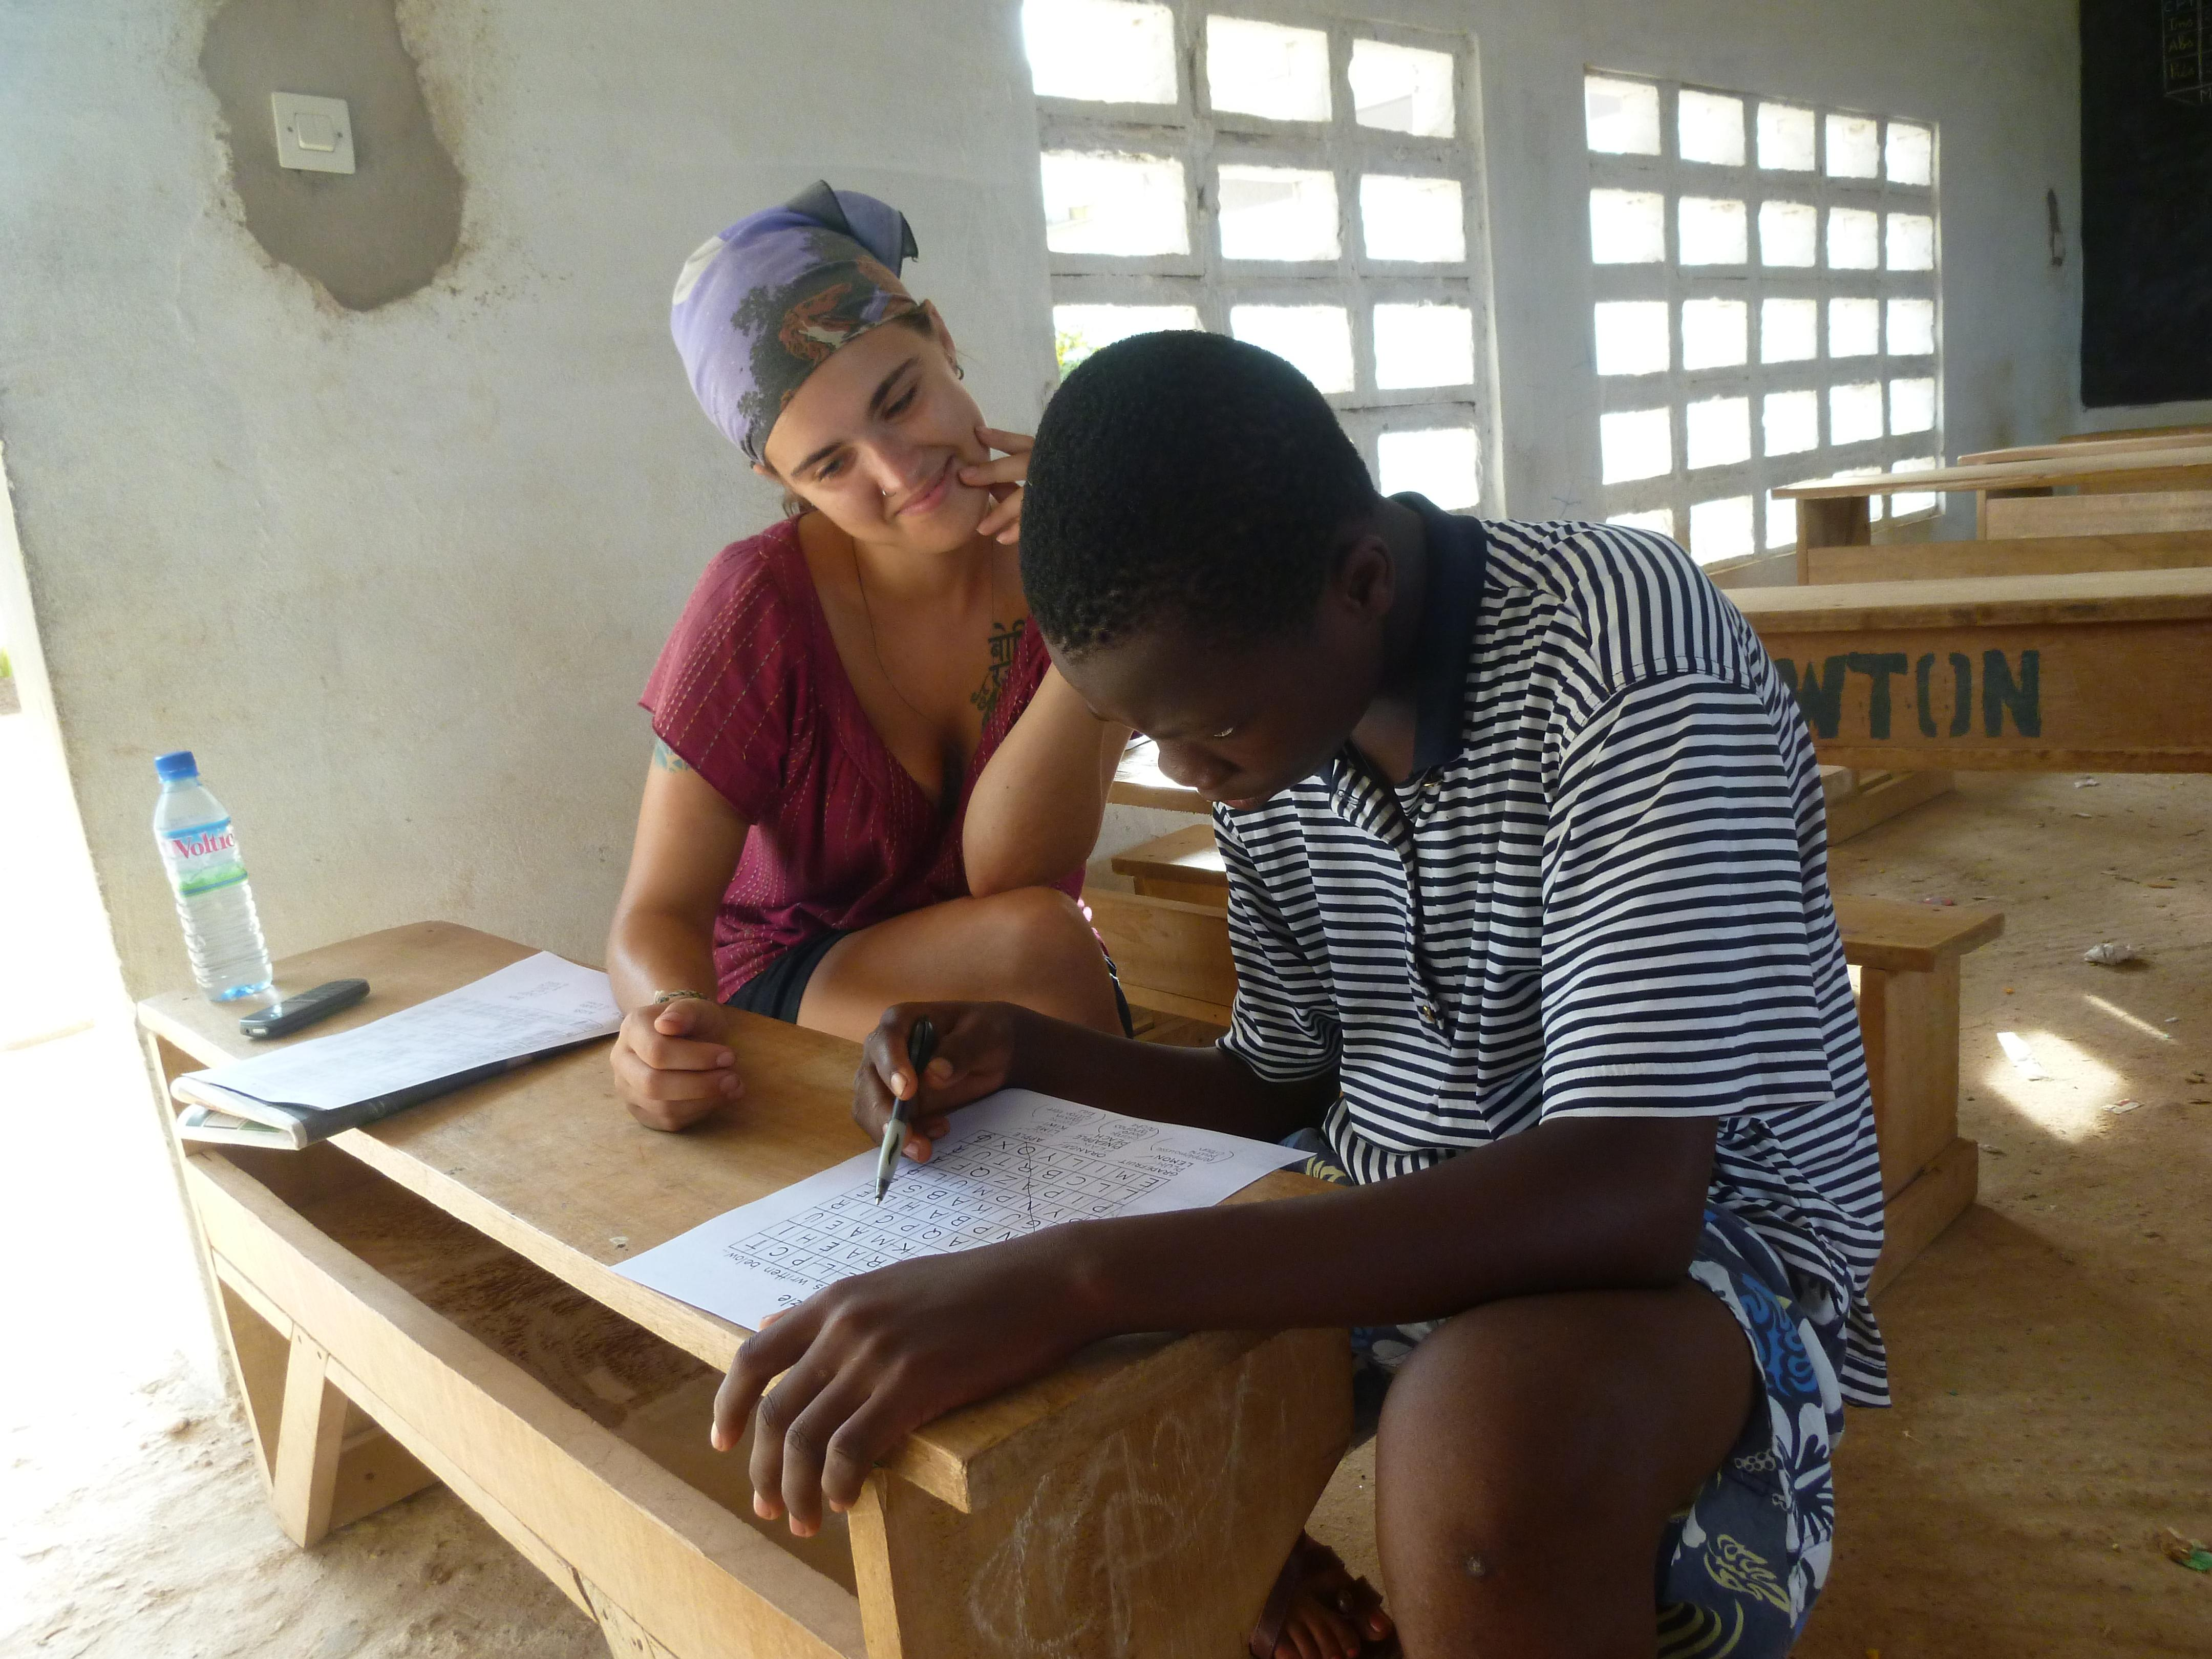 A young man participates in a therapy session run by a student doing a Speech Therapy internship in Africa.